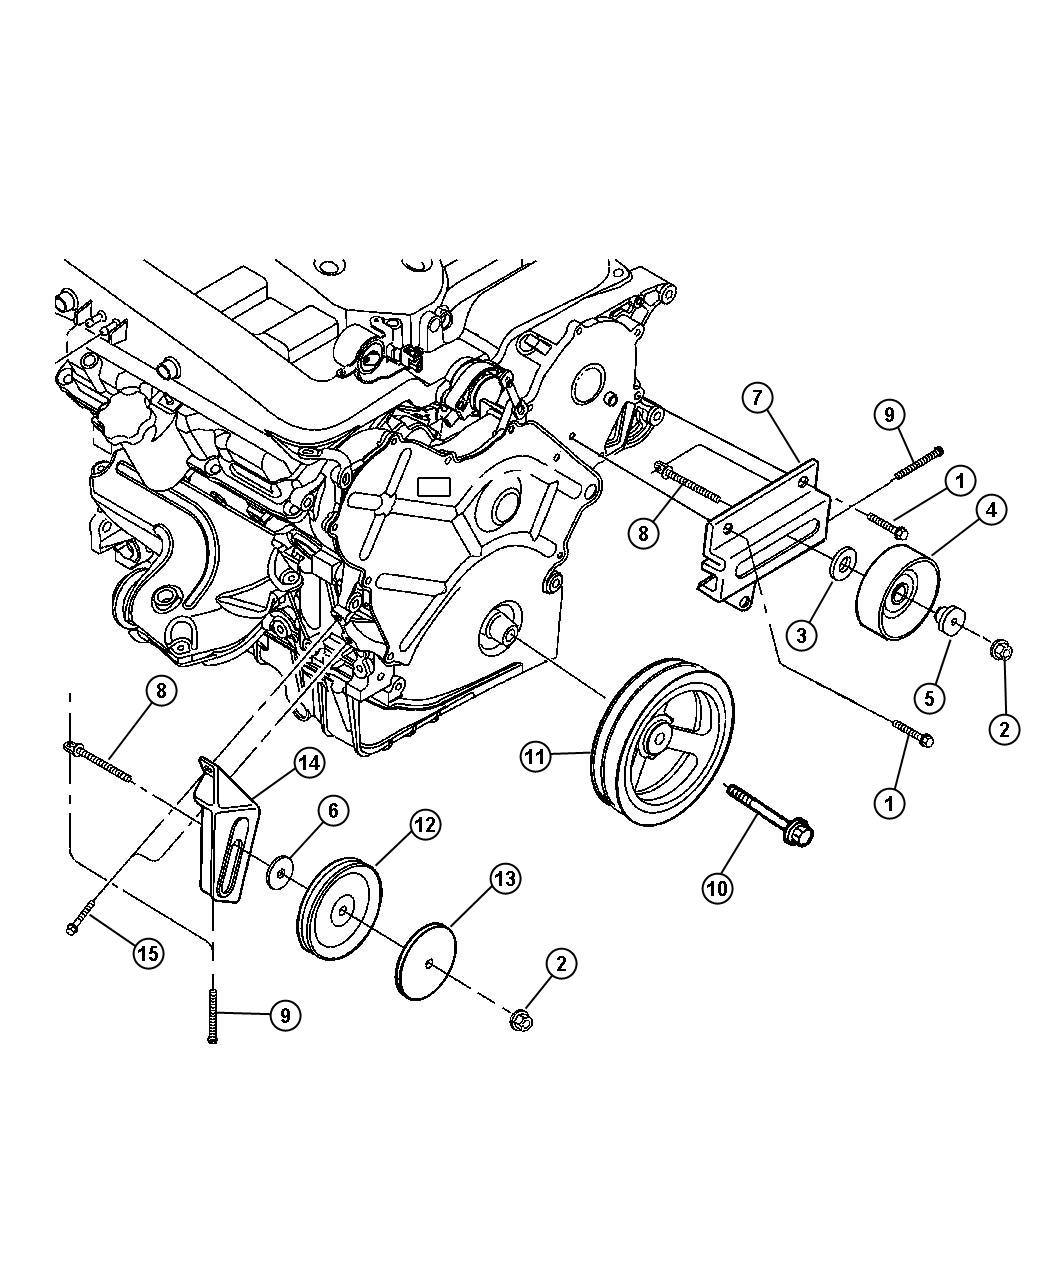 2002 Dodge Stratus Wiring Diagram, 2002, Free Engine Image